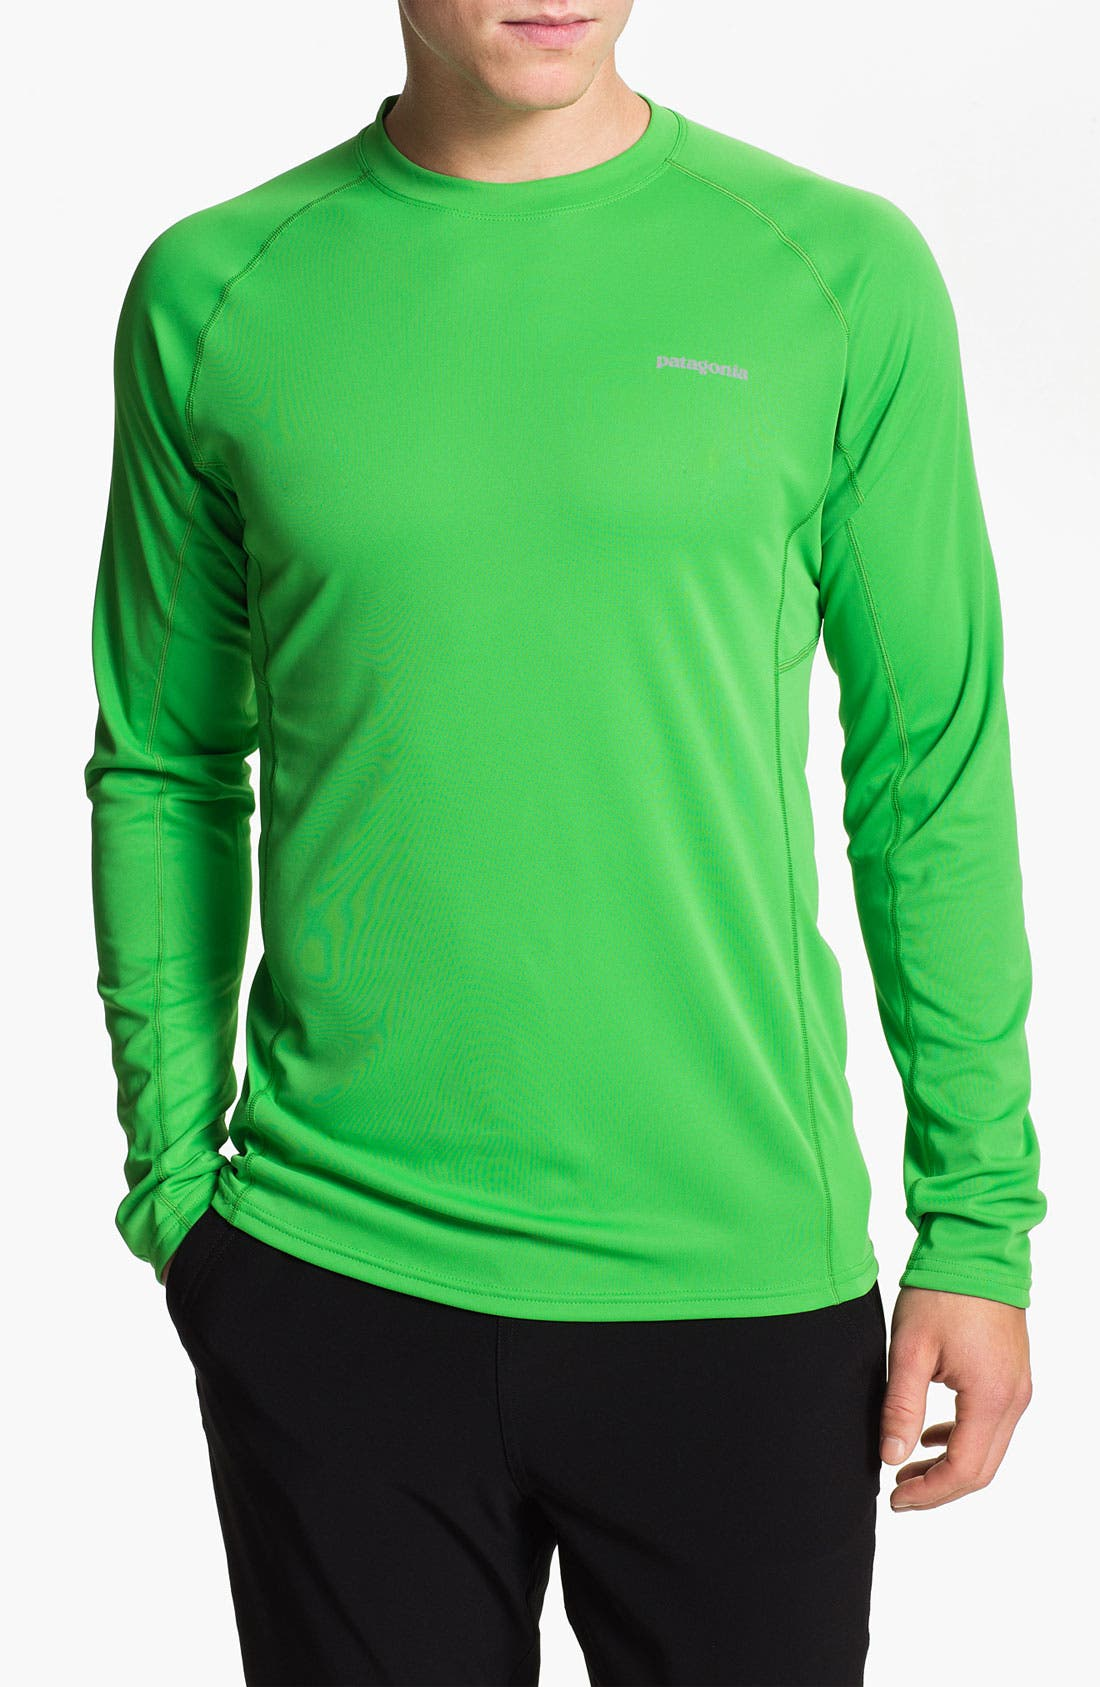 Alternate Image 1 Selected - Patagonia 'Fore Runner' Long Sleeve T-Shirt